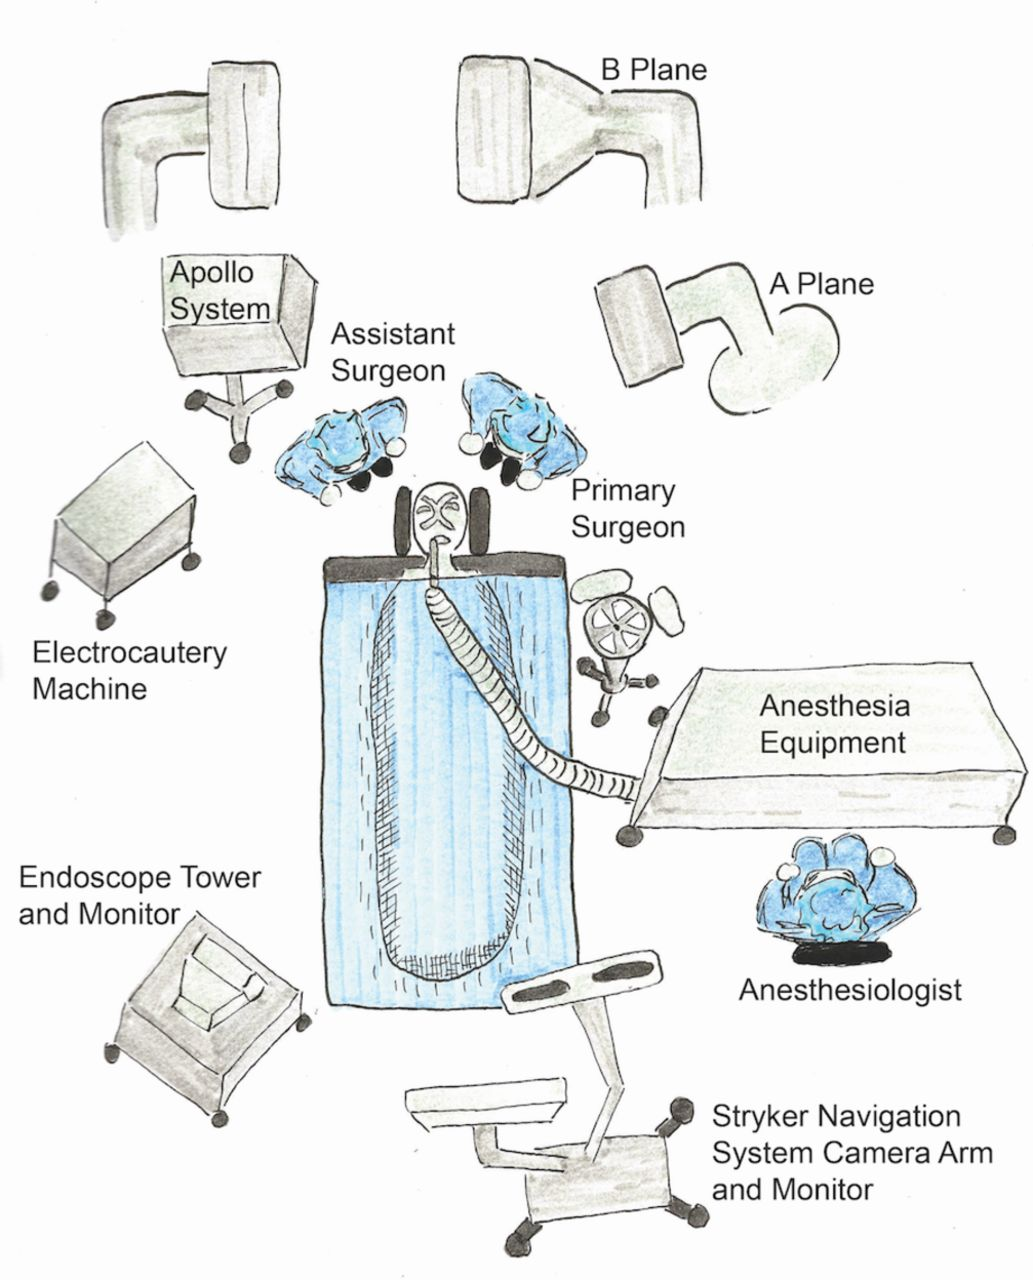 A review and comparison of three neuronavigation systems for